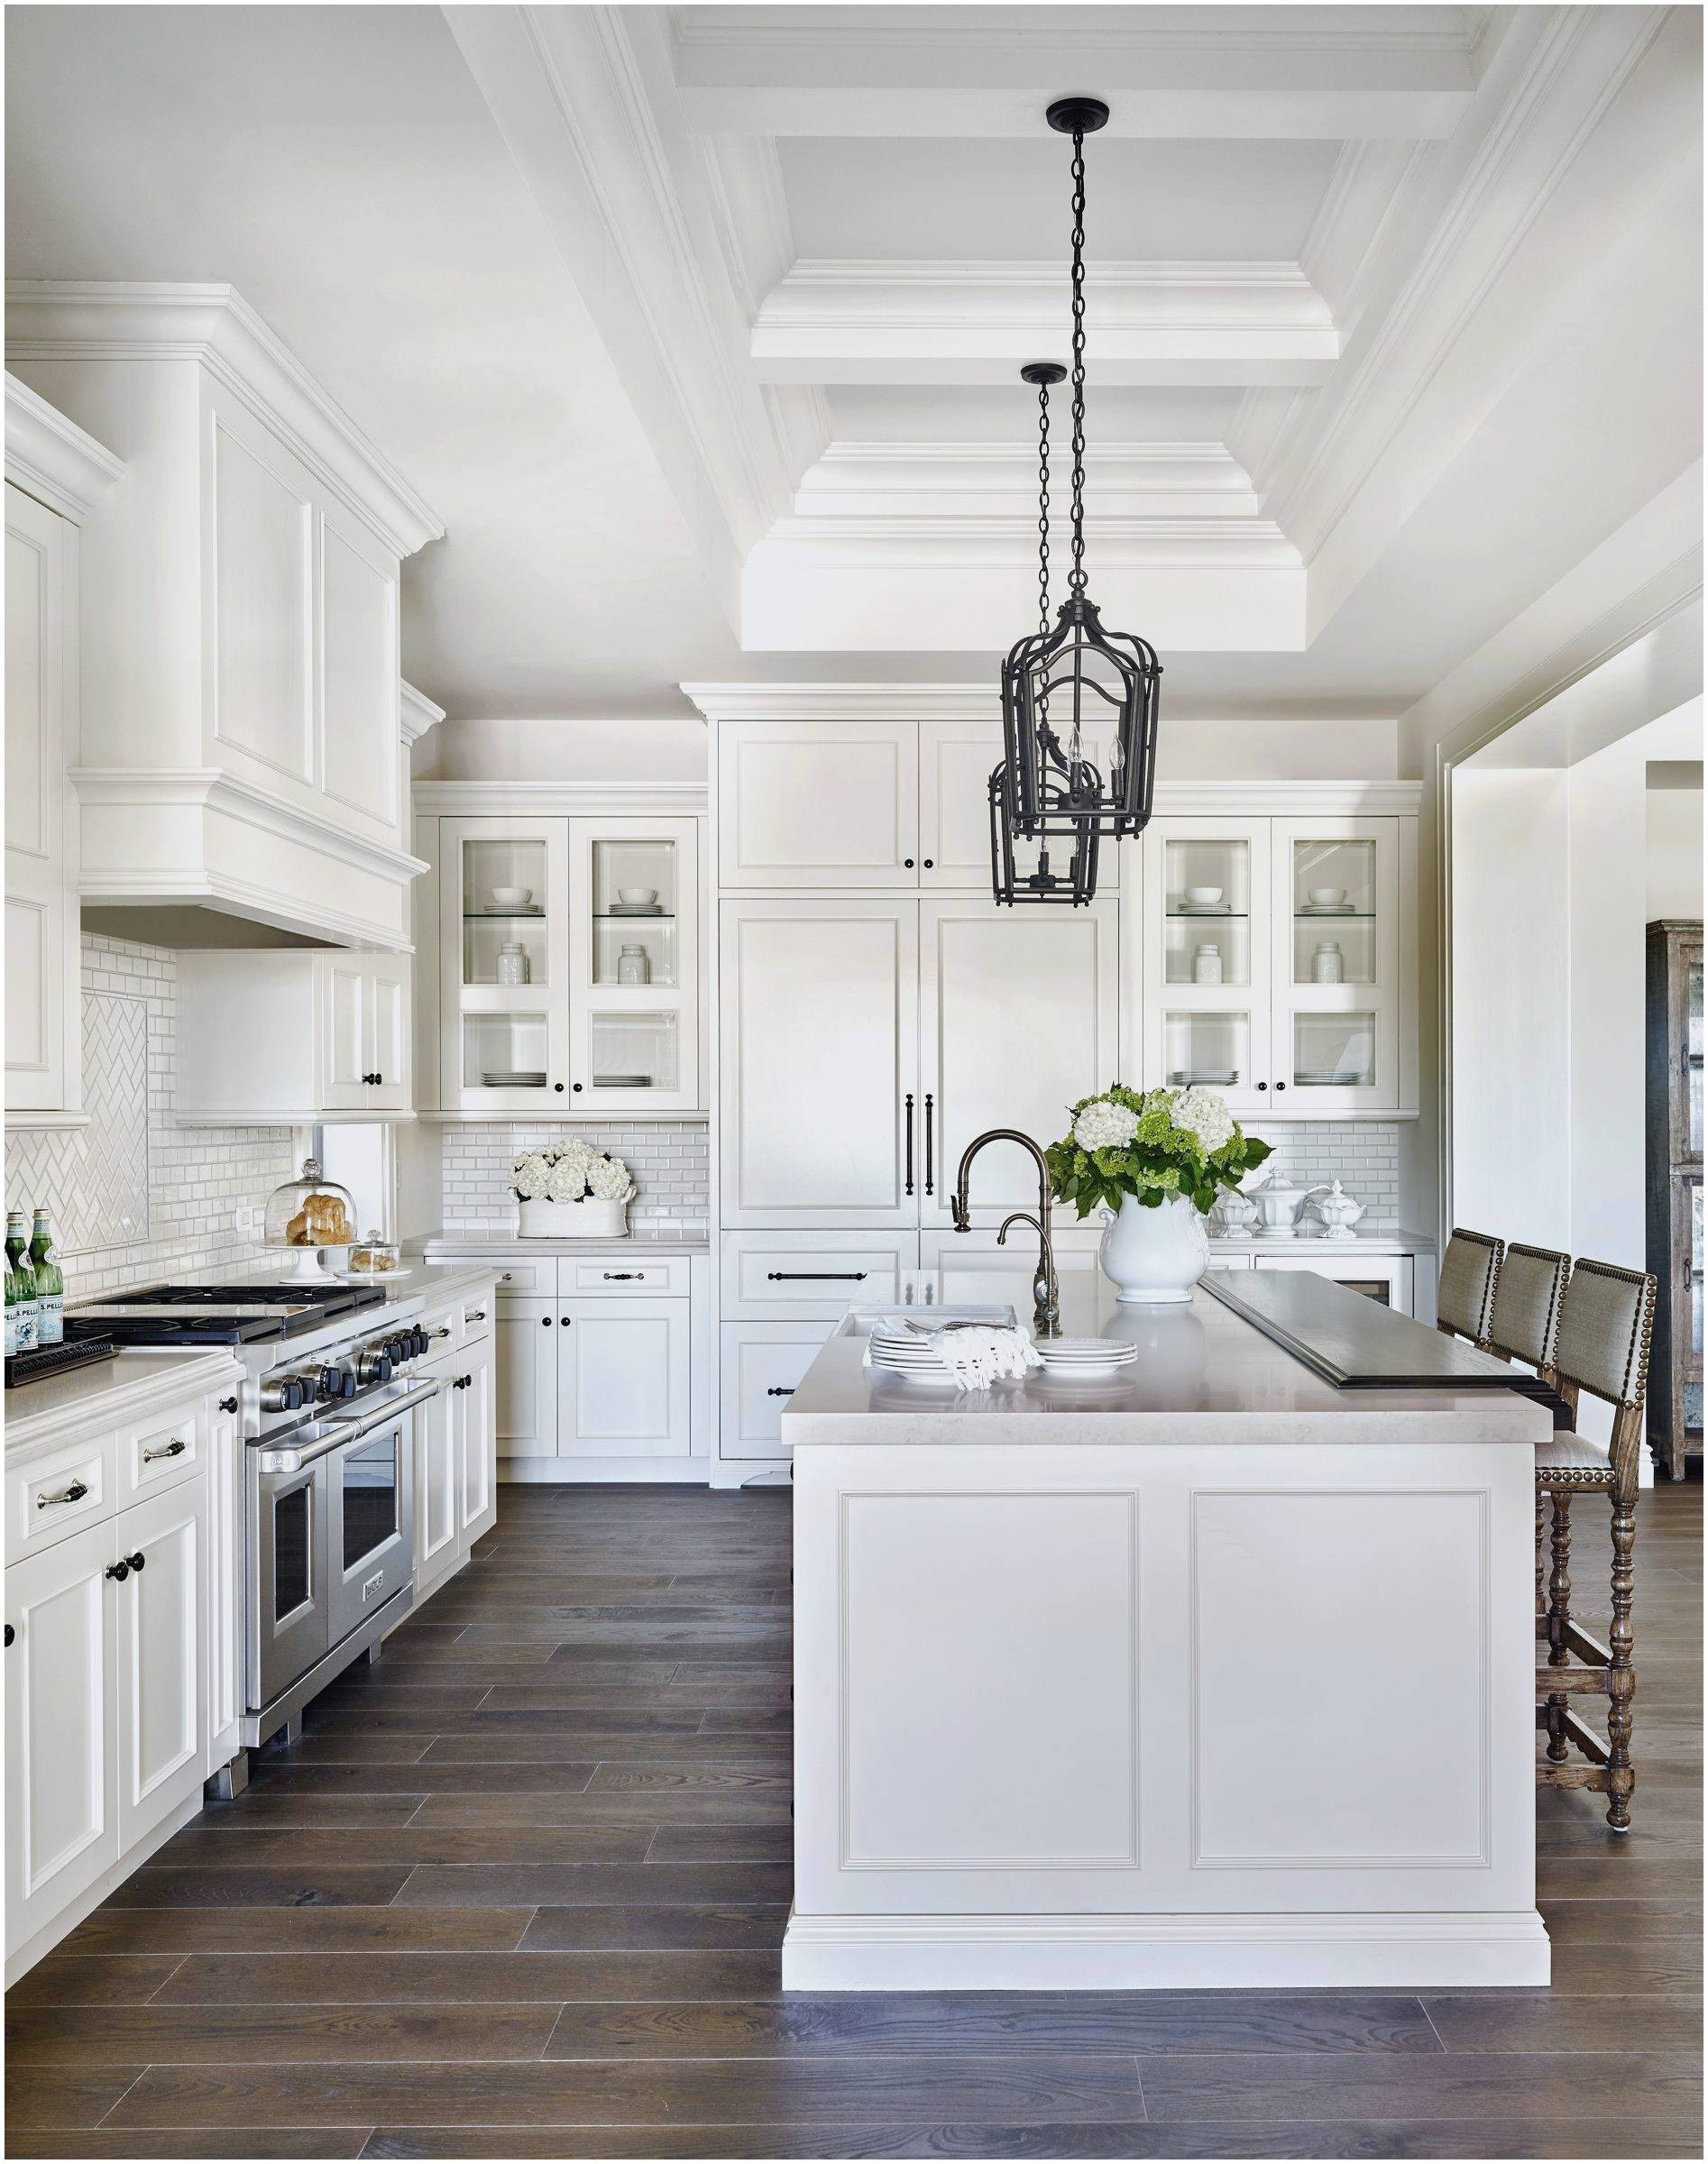 should you put hardwood floors in kitchen of 31 option church flooring ideas view tedxvermilionstreet org intended for kitchen marazzi kitchens marazzi kitchens 0d kitchens from home style interior design source safaxe